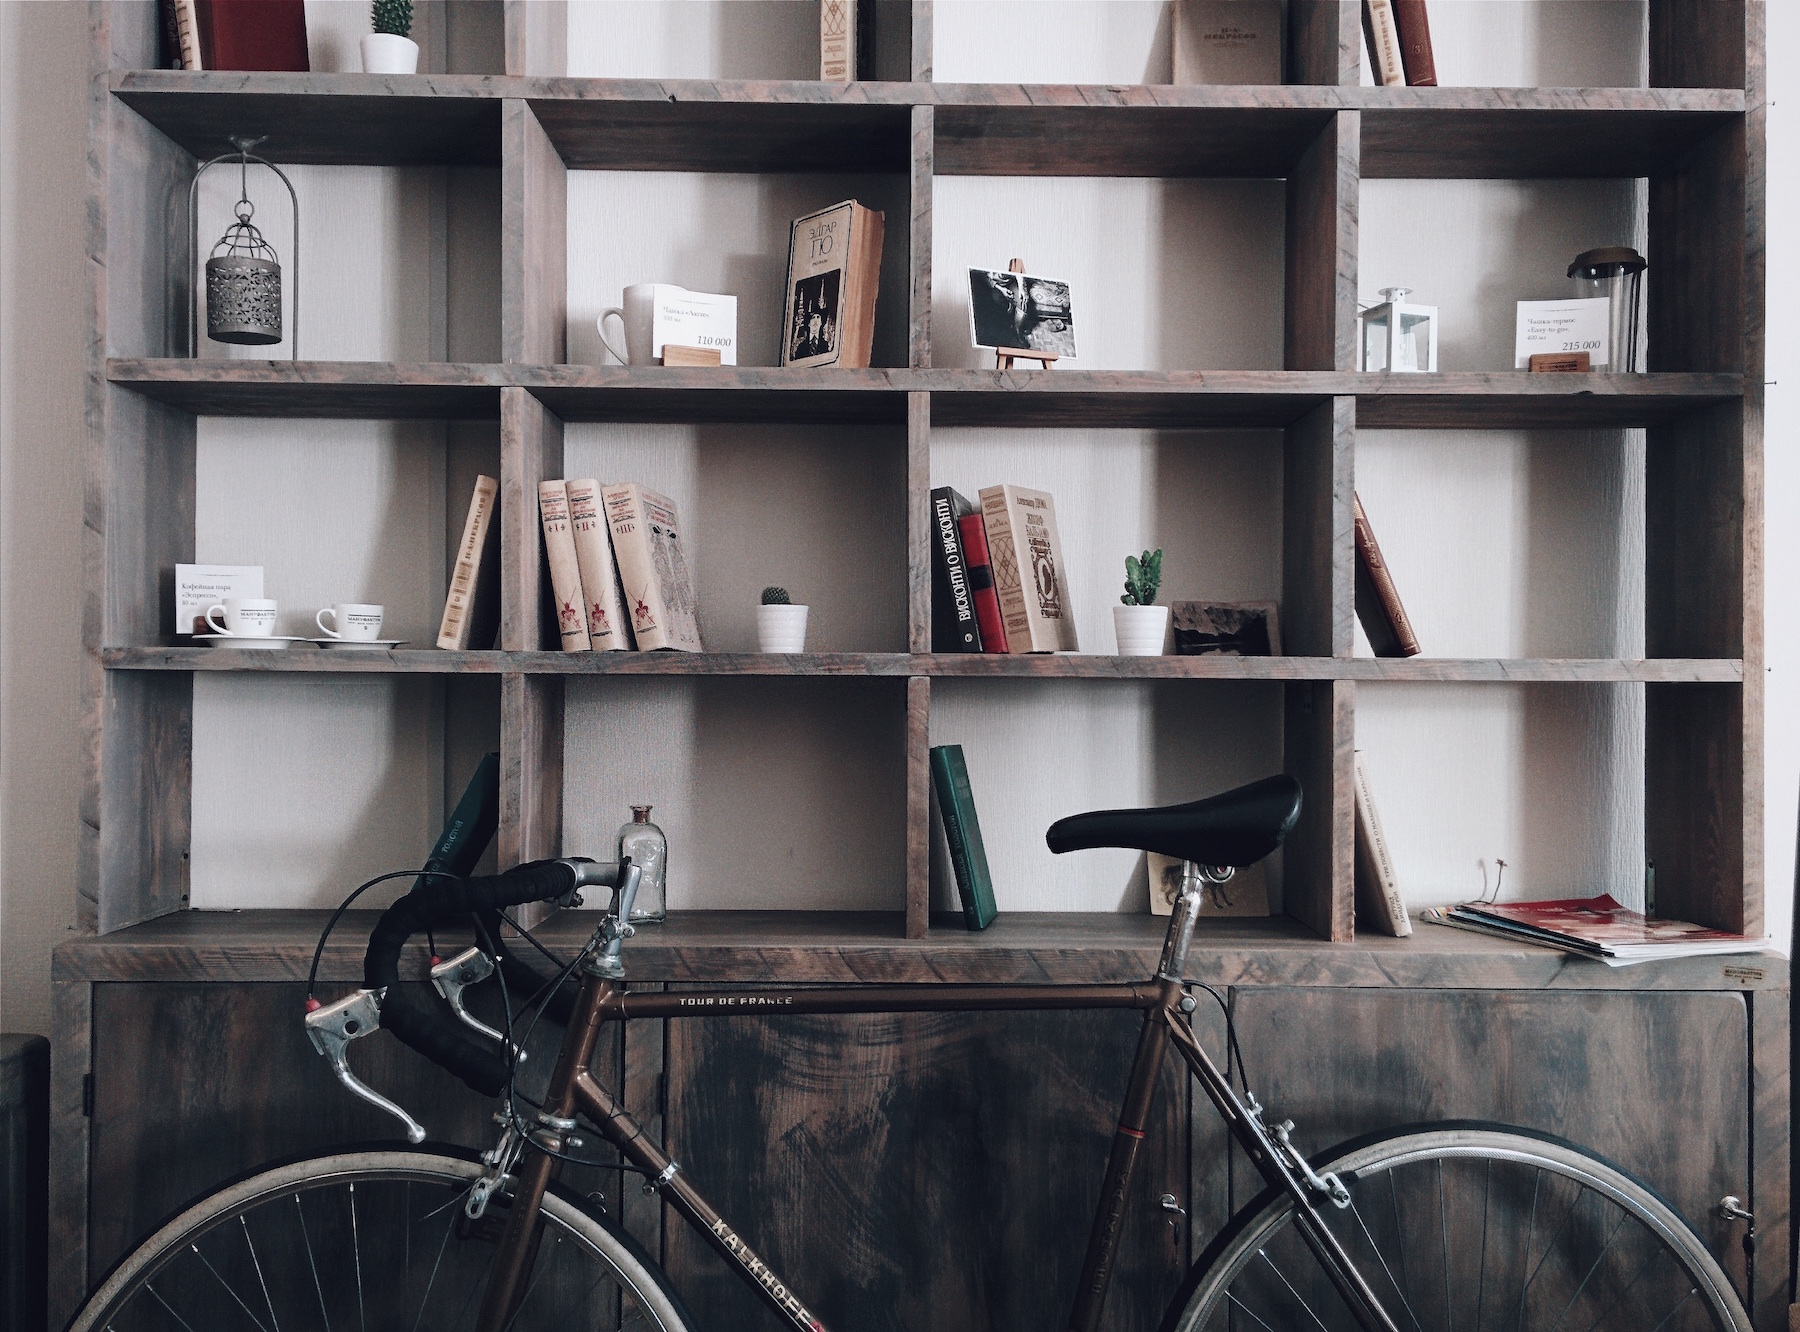 Bicycle in from of wooden book shelf